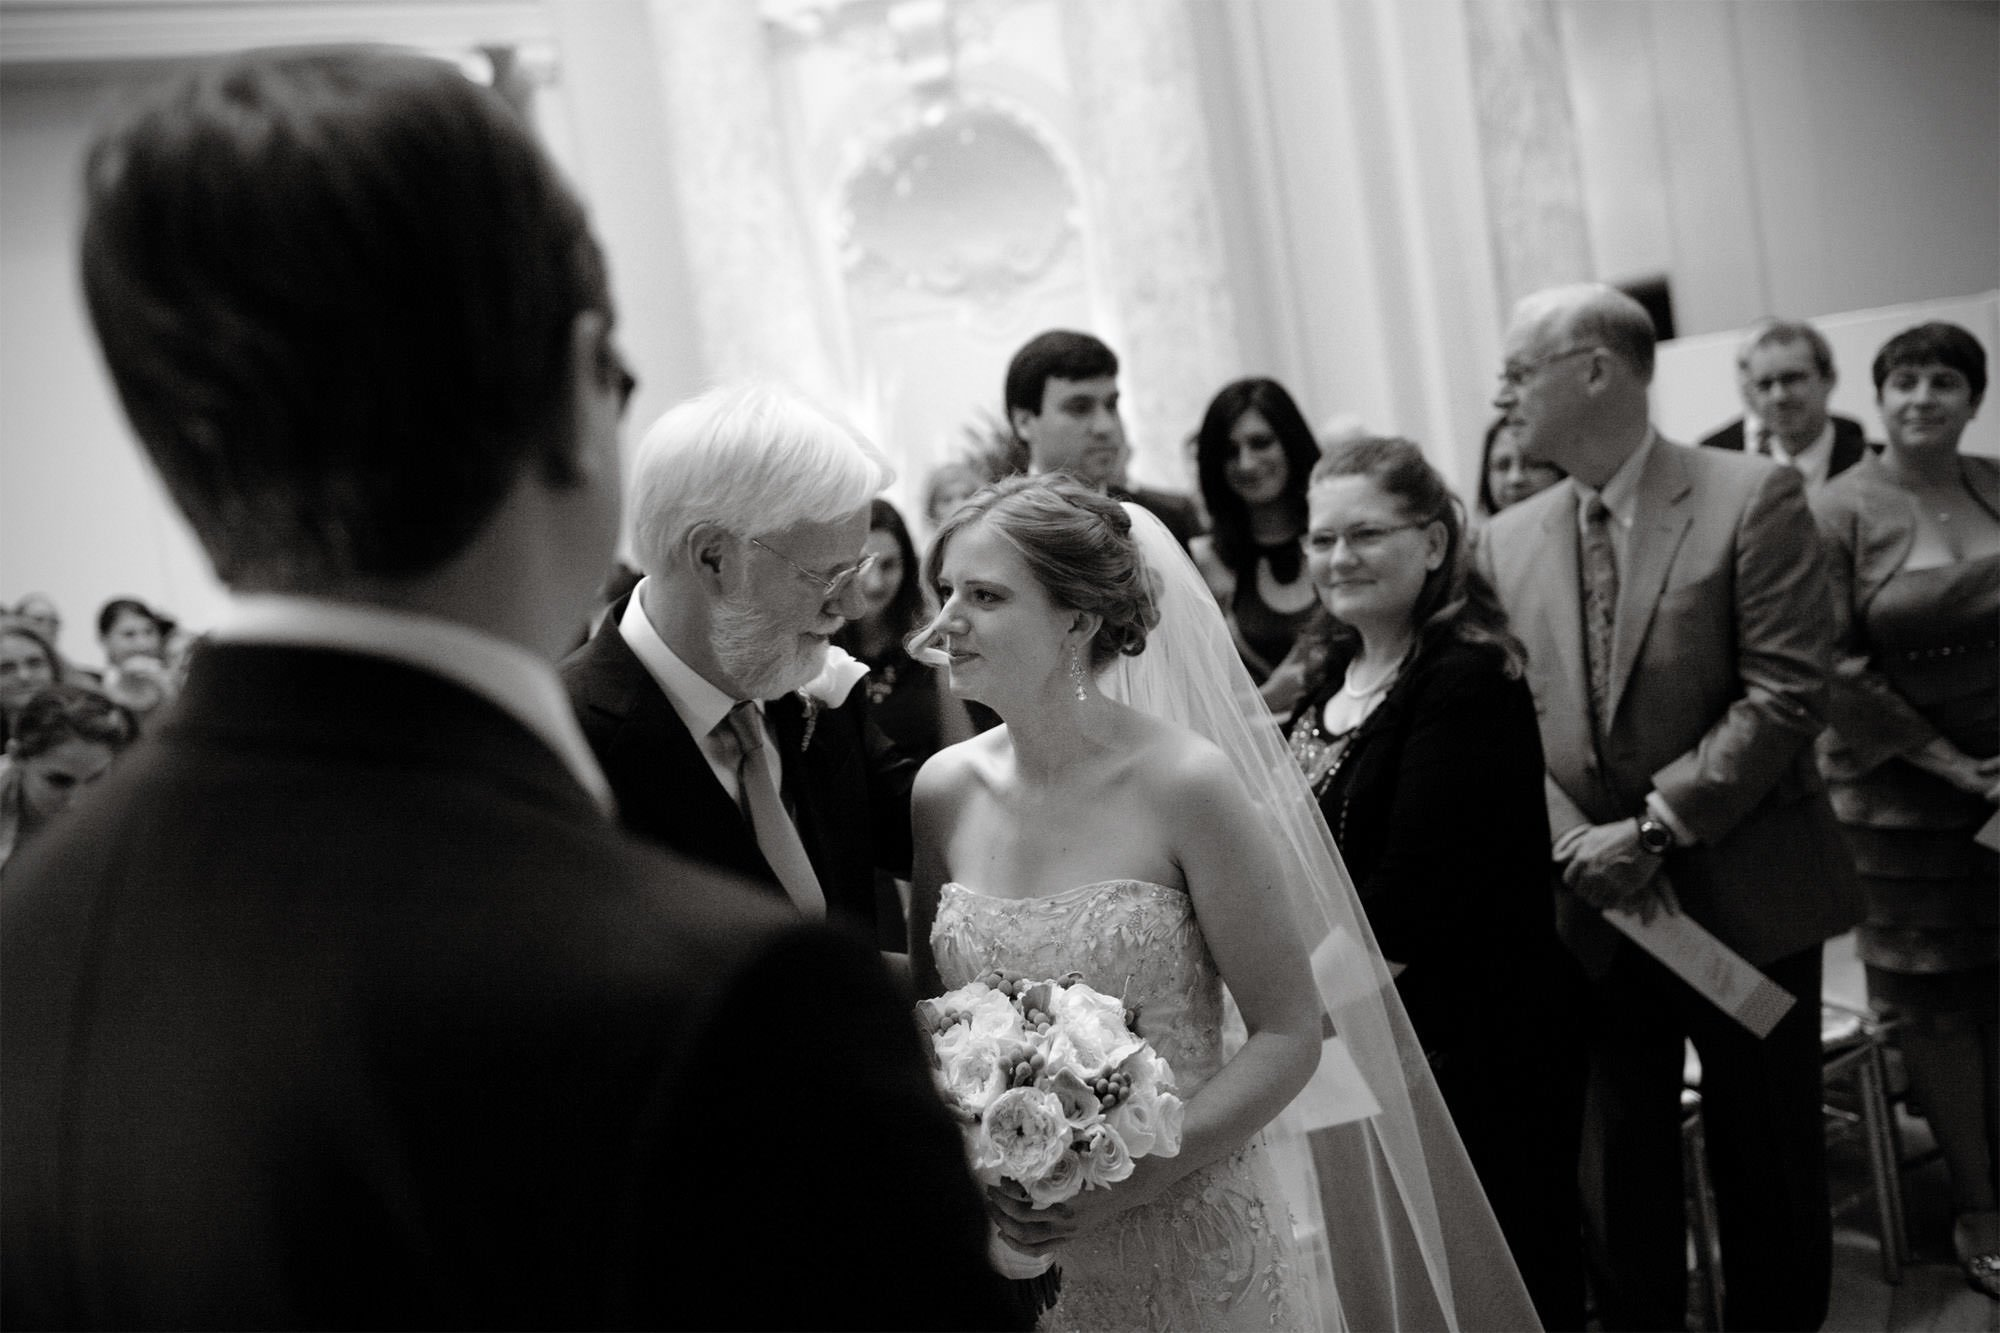 The bride looks at her father during the Carnegie Institute for Science Wedding ceremony.